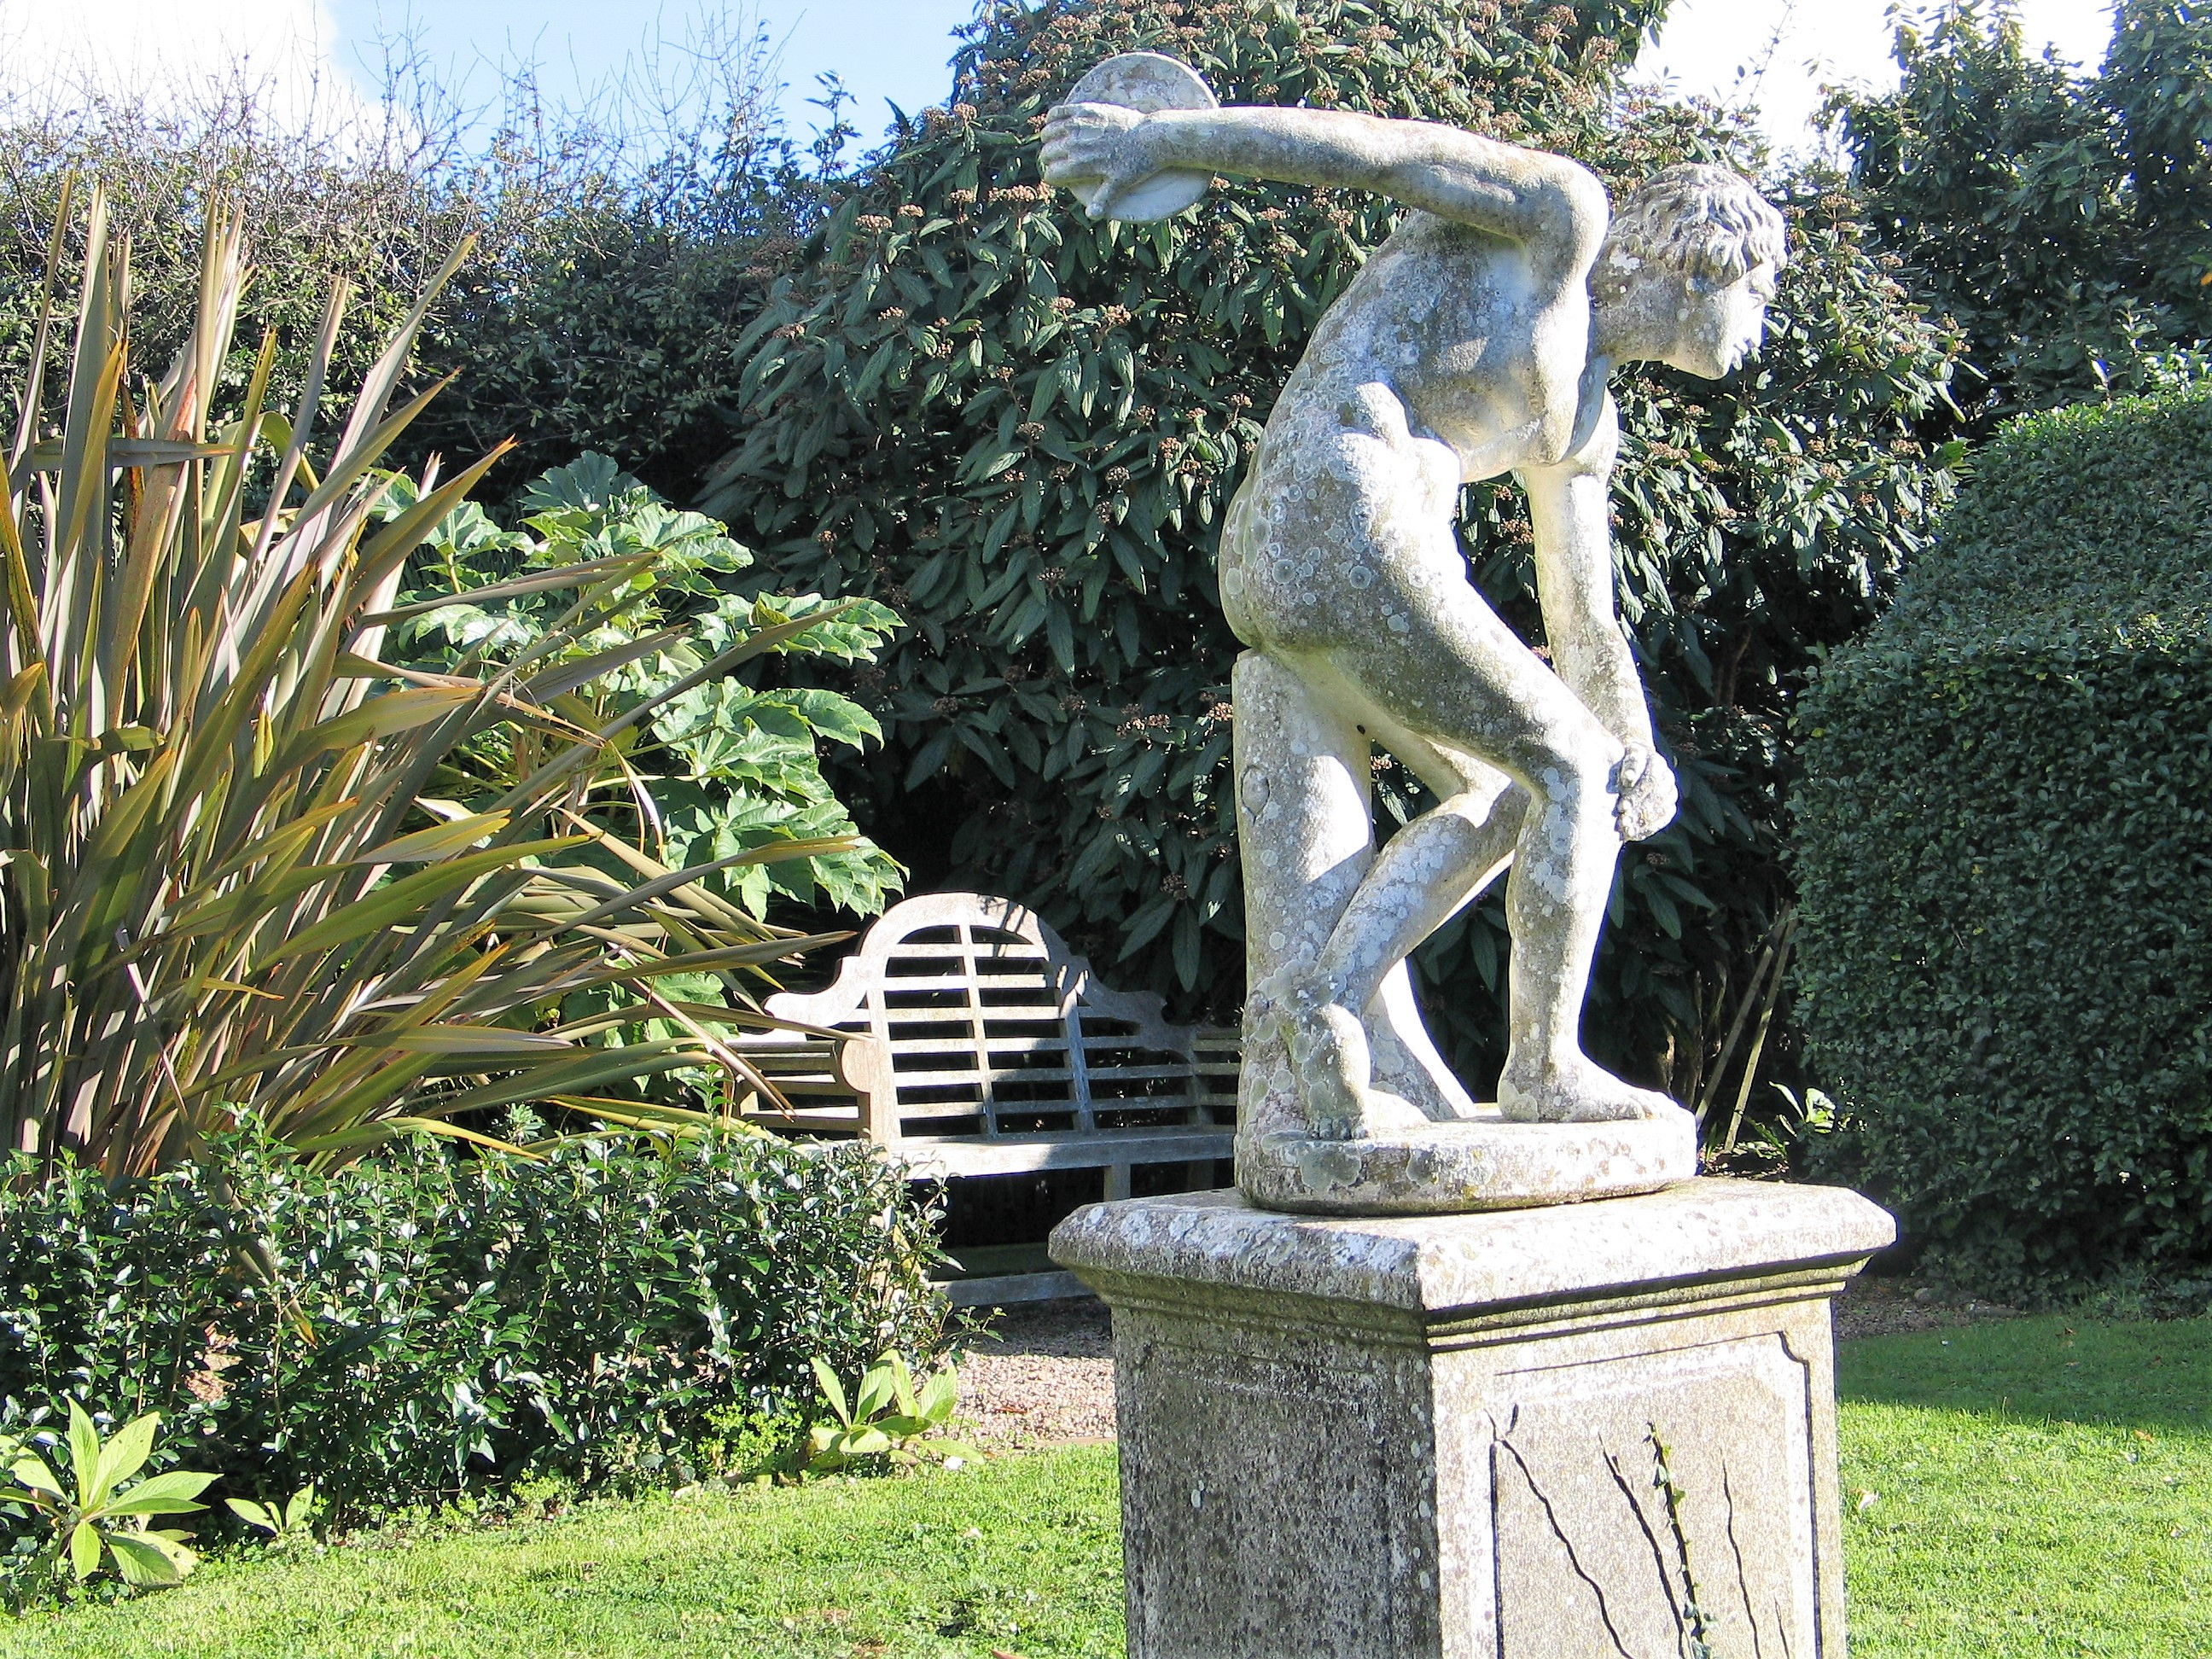 Statue of the Discus thrower